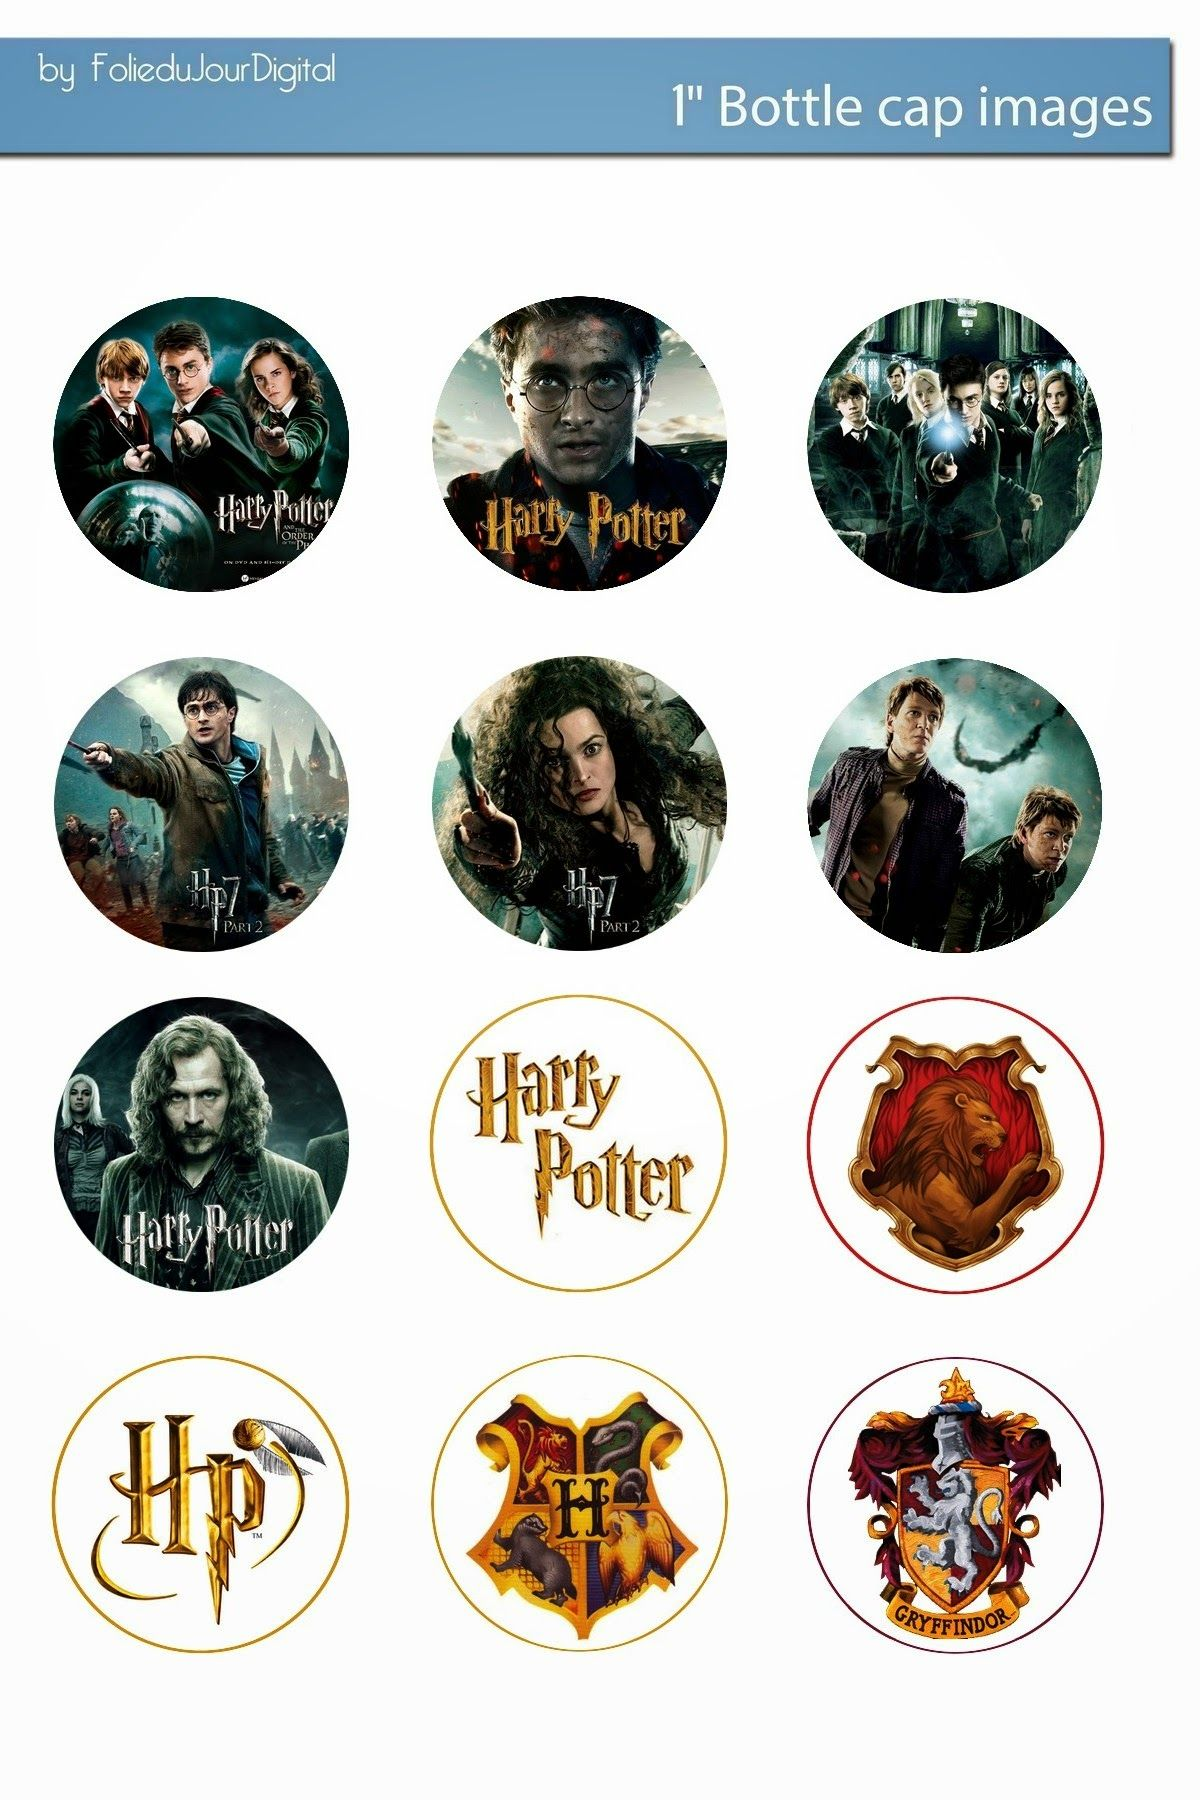 Free Bottle Cap Images Harry Potter Free Digital Bottle Cap Images 1 1inch Harry Potter Free Bottle Cap Images Bottle Cap